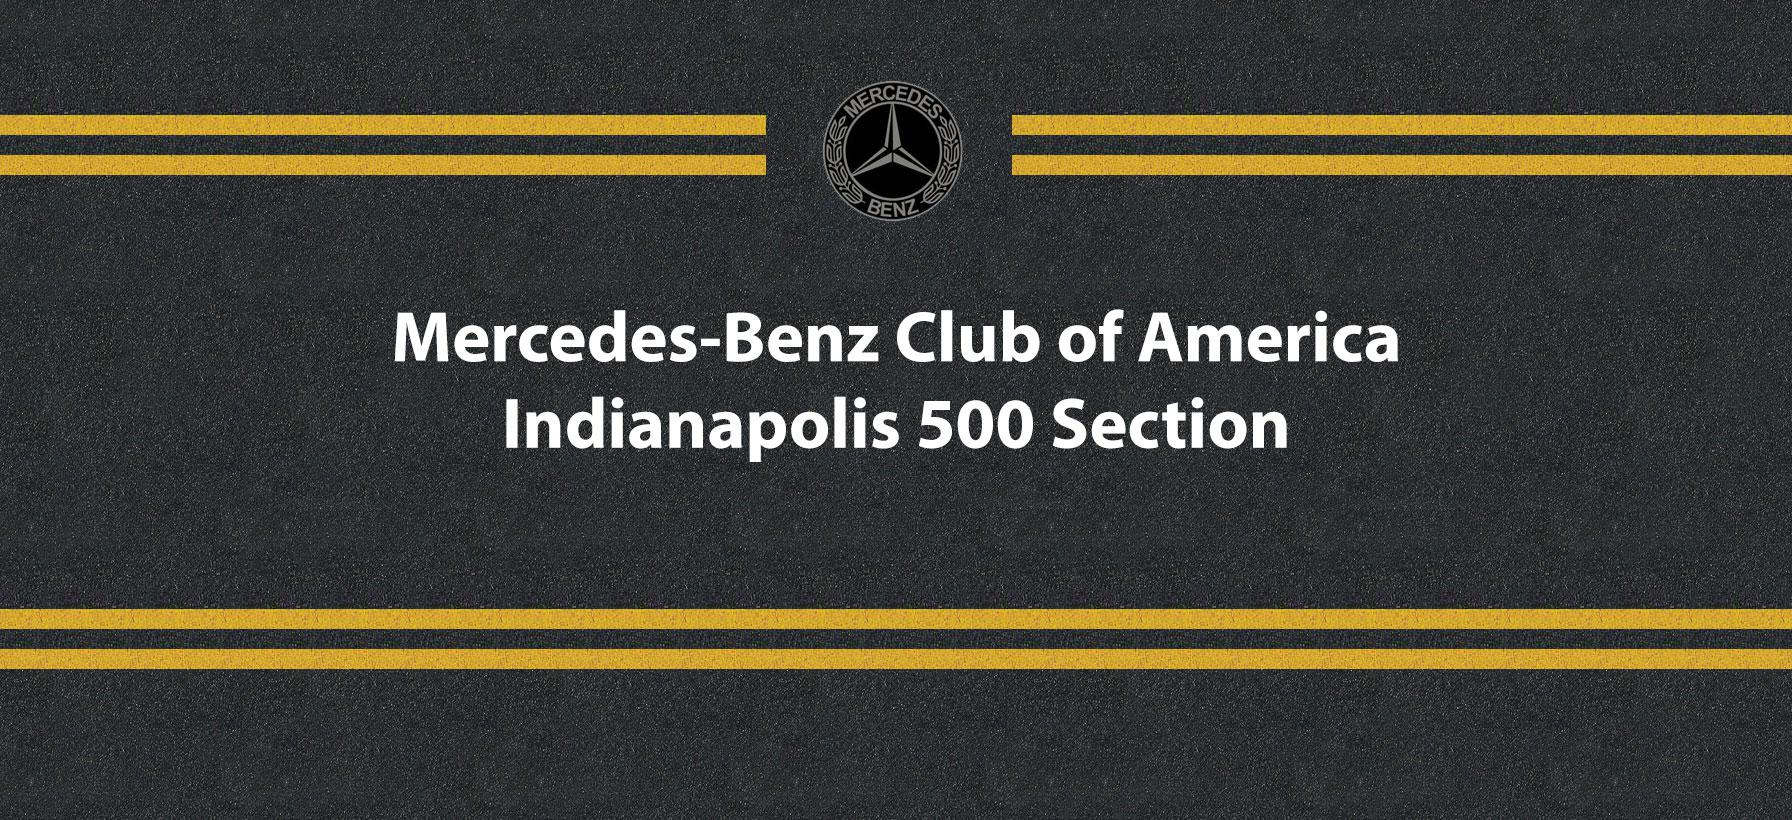 Welcome To The Indianapolis 500 Section Web Site Of The Mercedes Benz Club  Of America.